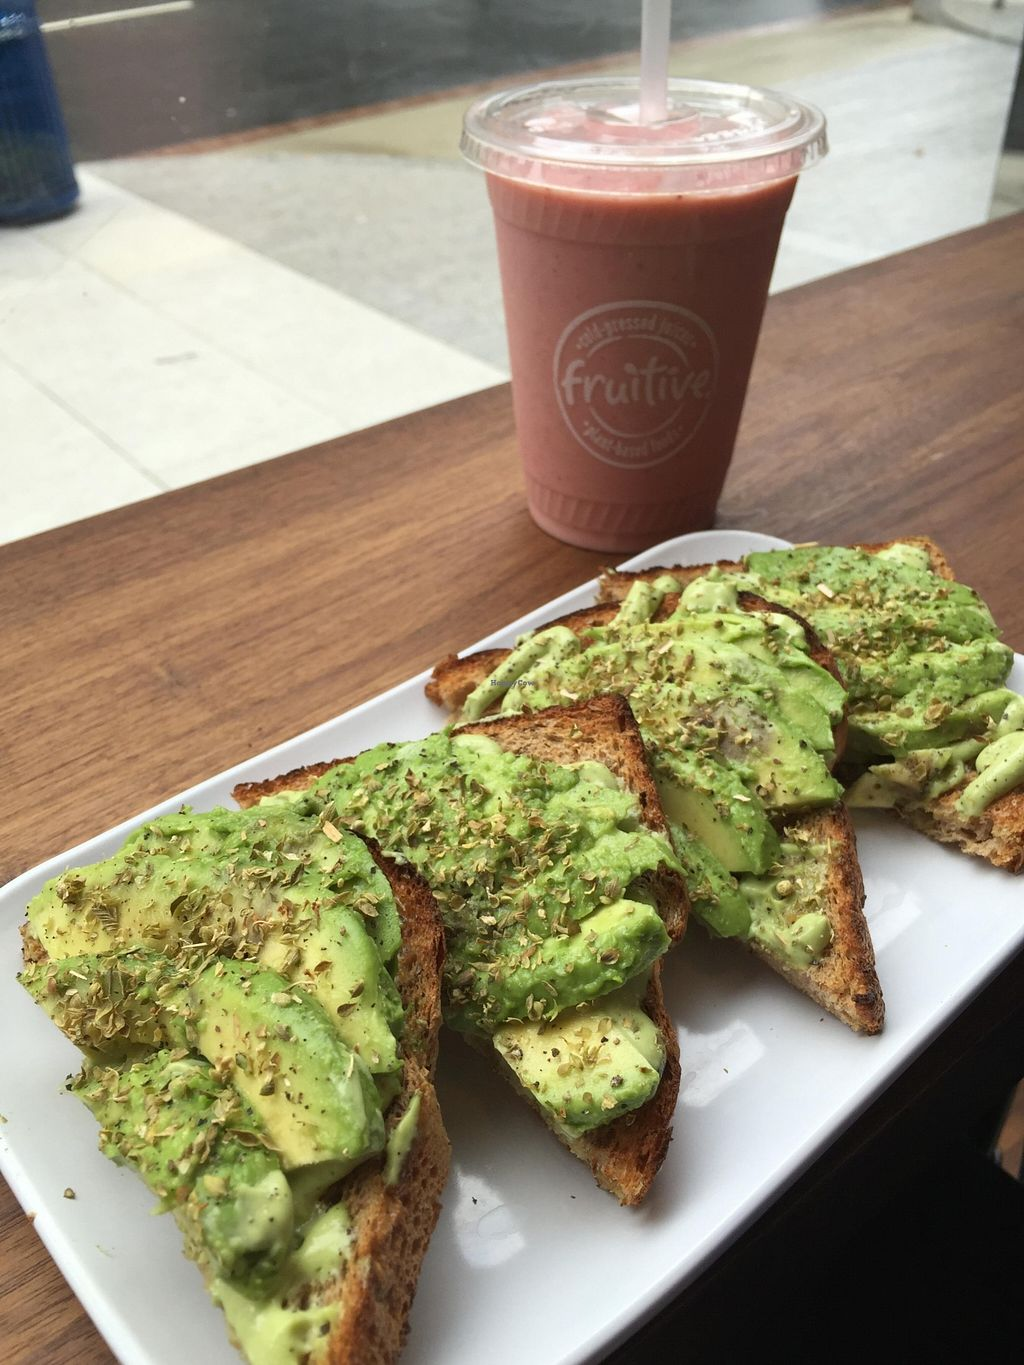 """Photo of Fruitive  by <a href=""""/members/profile/Karenk"""">Karenk</a> <br/>Avocado Toast with basil/avocado pesto - smoothie on the side <br/> April 4, 2016  - <a href='/contact/abuse/image/69107/142675'>Report</a>"""